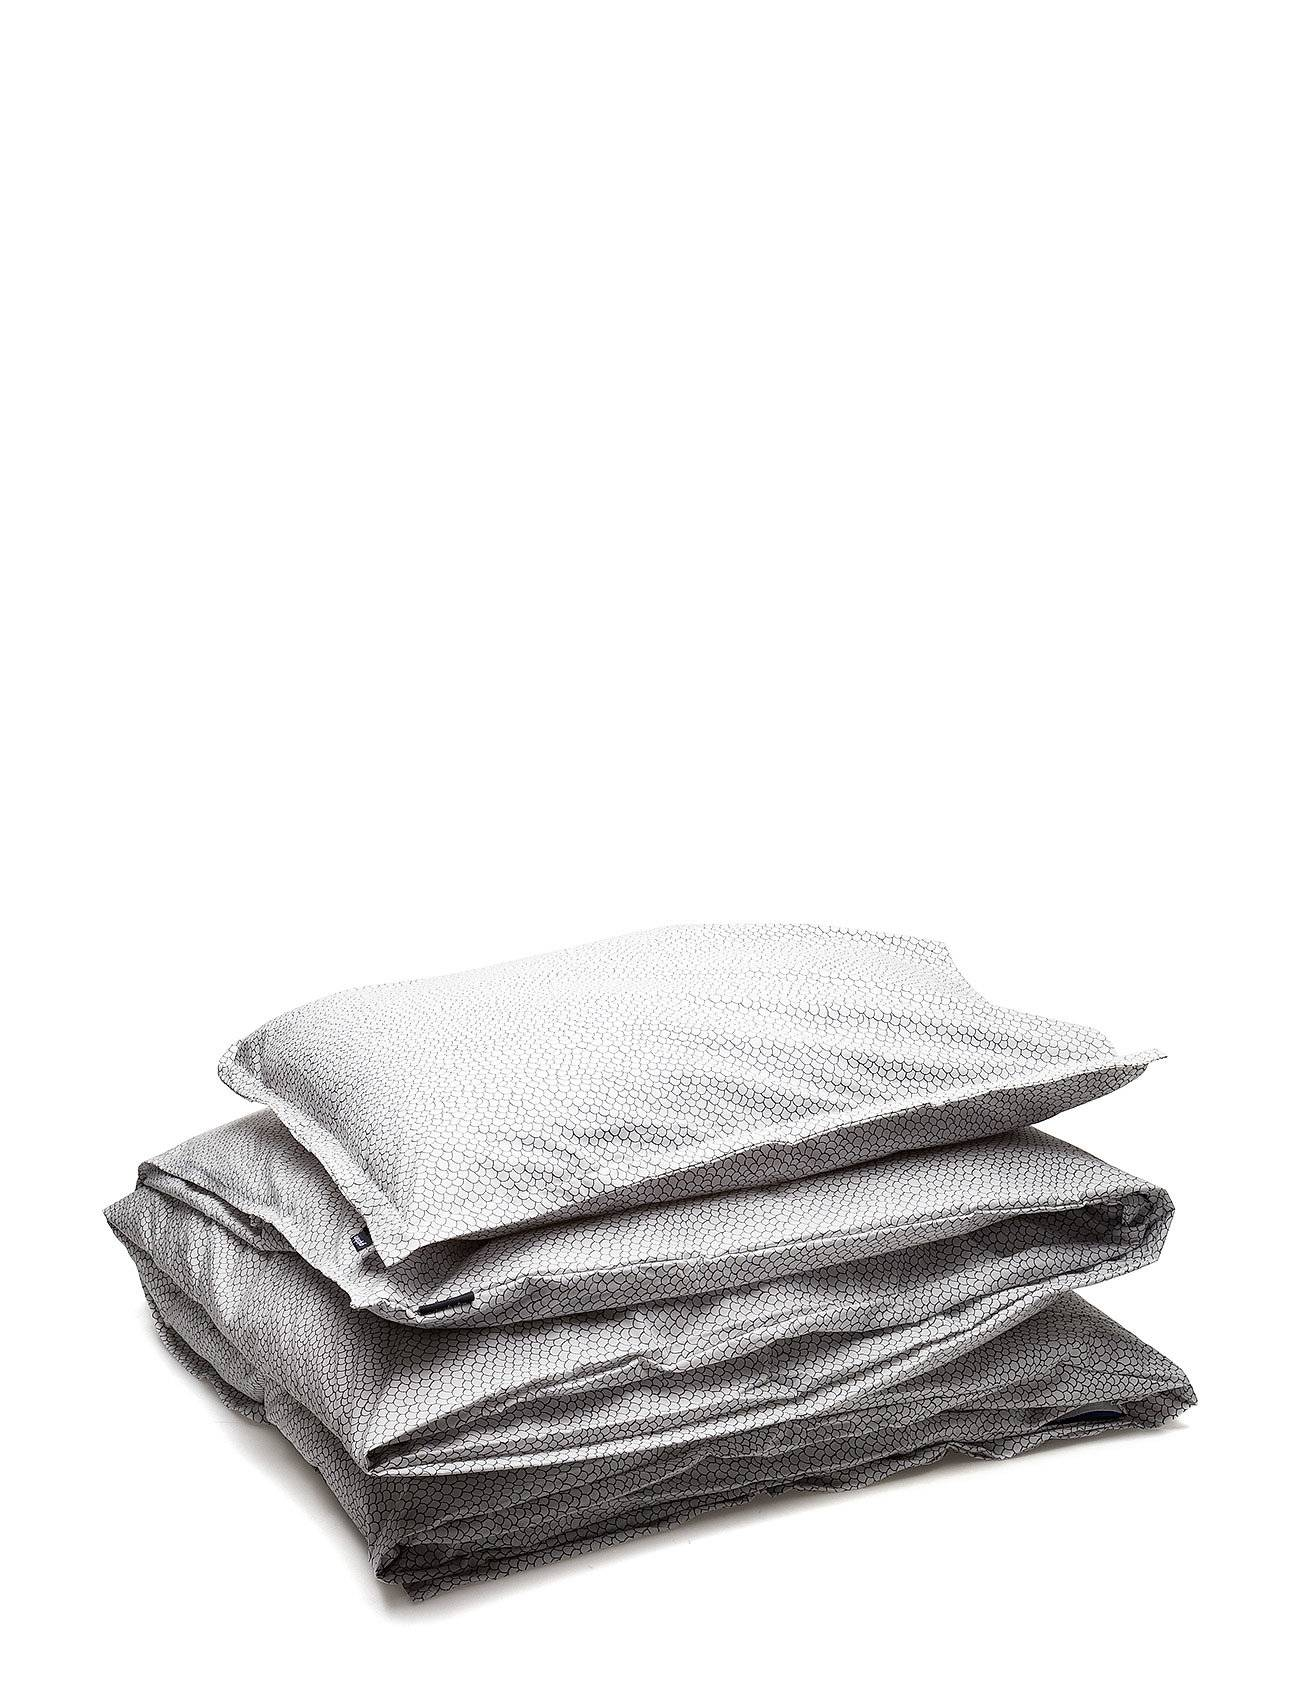 Gripsholm Bed Set Percale Olivia